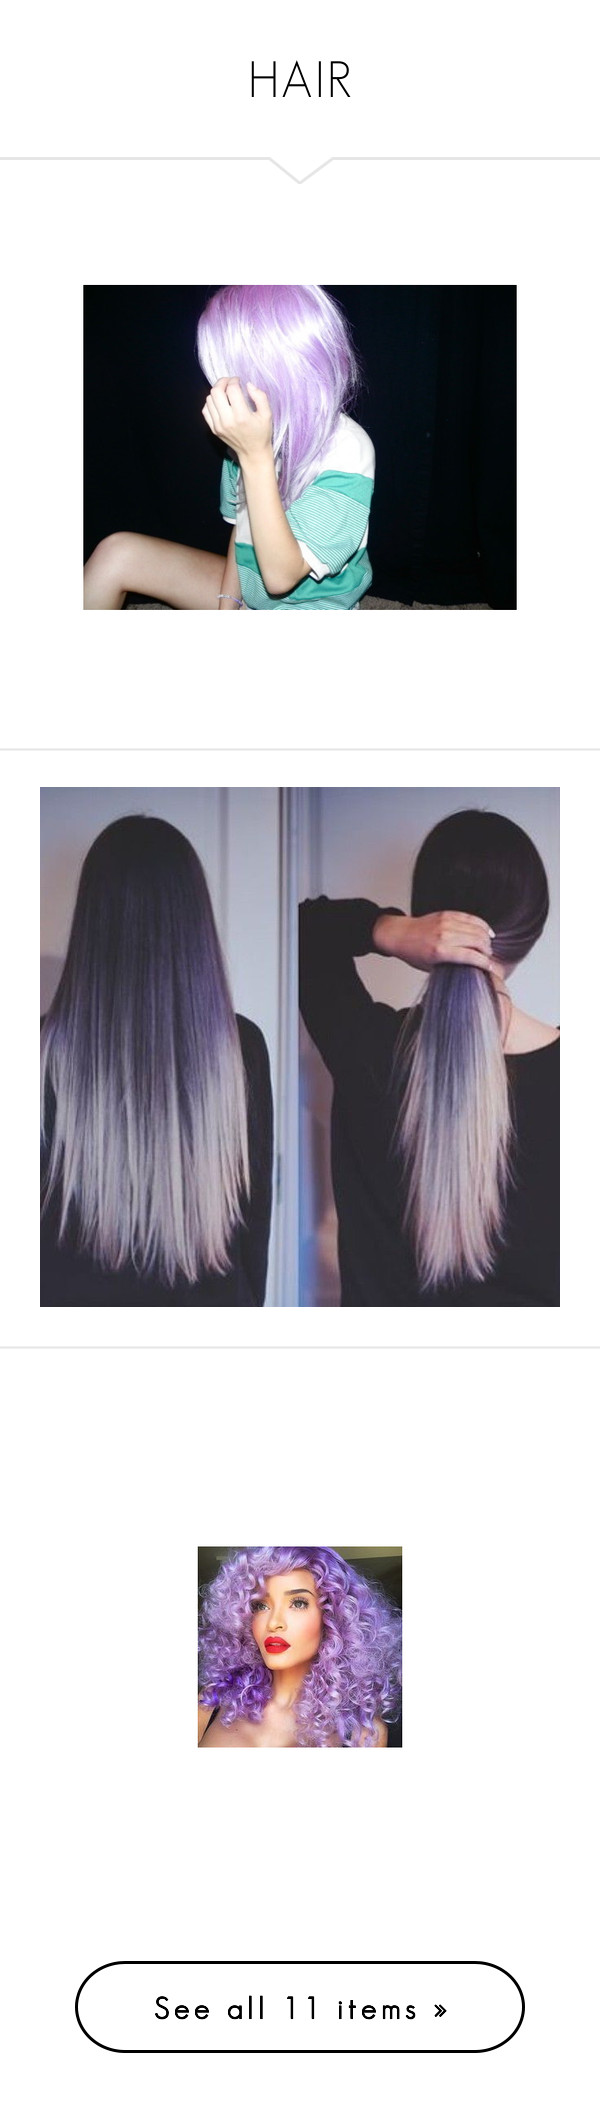 """""""HAIR"""" by sophierose189 ❤ liked on Polyvore featuring hair, pictures, girls, photos, site models, beauty products, haircare, hair styling tools, hairstyles and hair styles"""